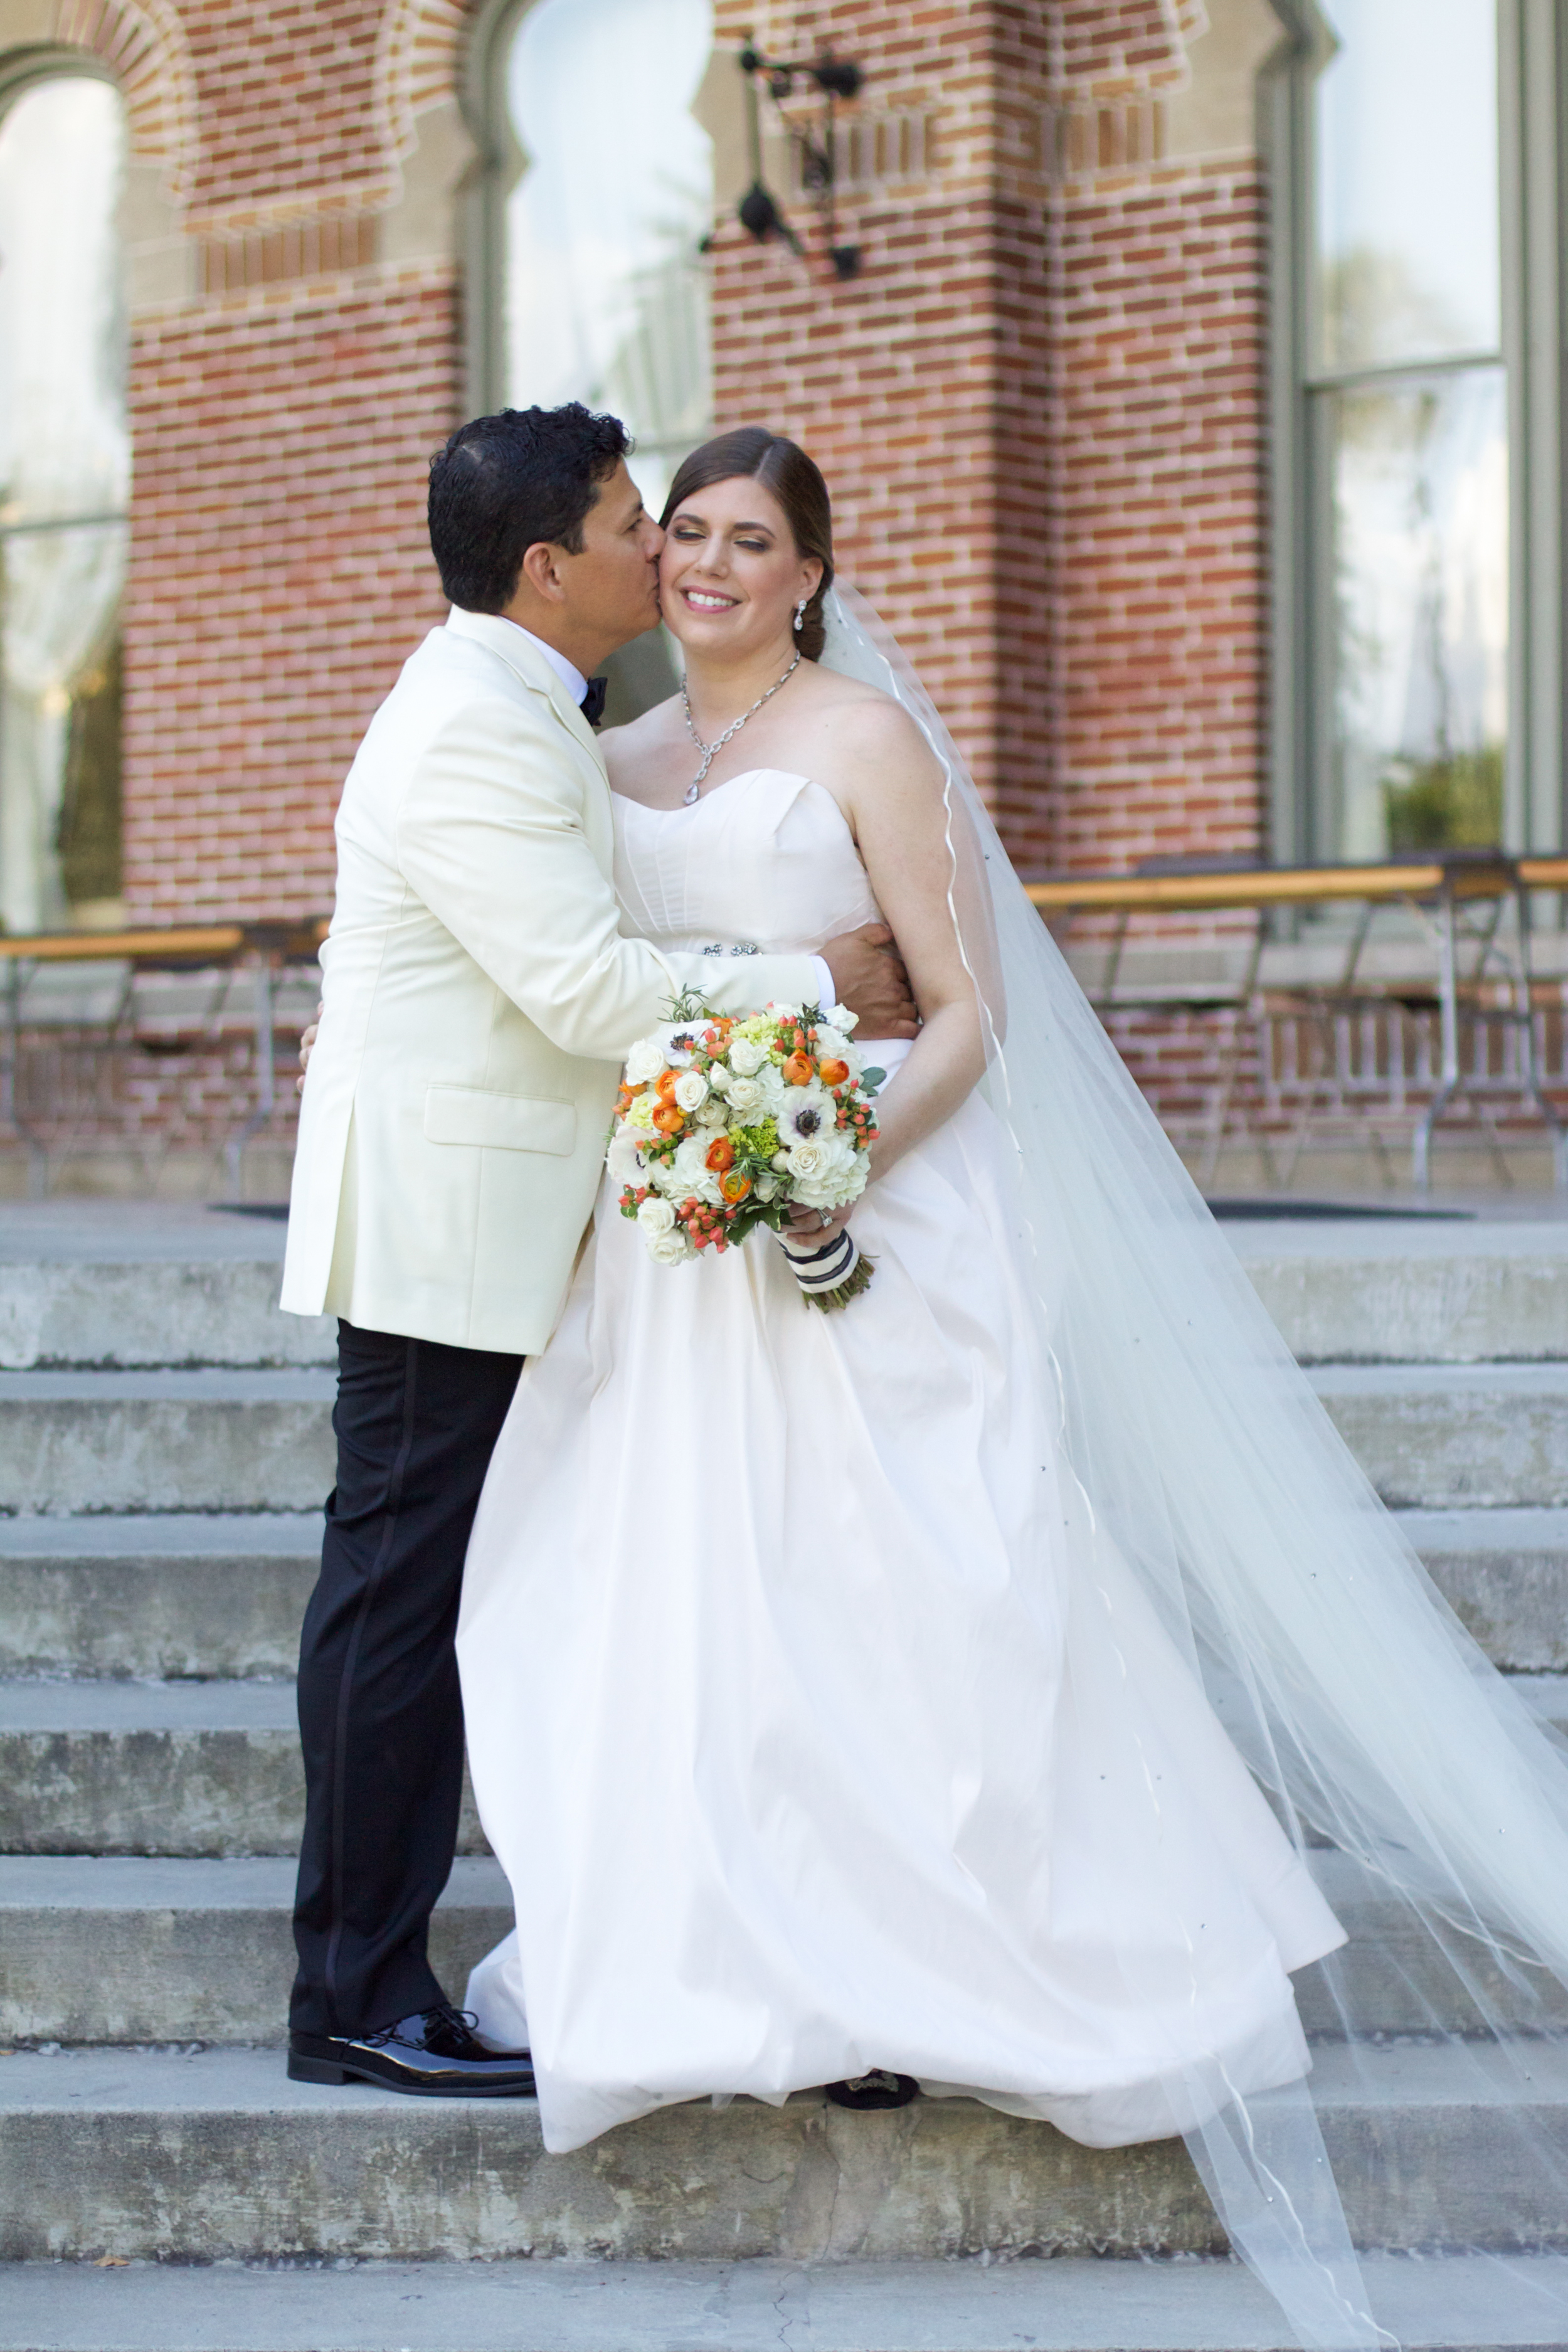 The couple had an intimate First Look on the steps of the historic Henry B Plant Museum